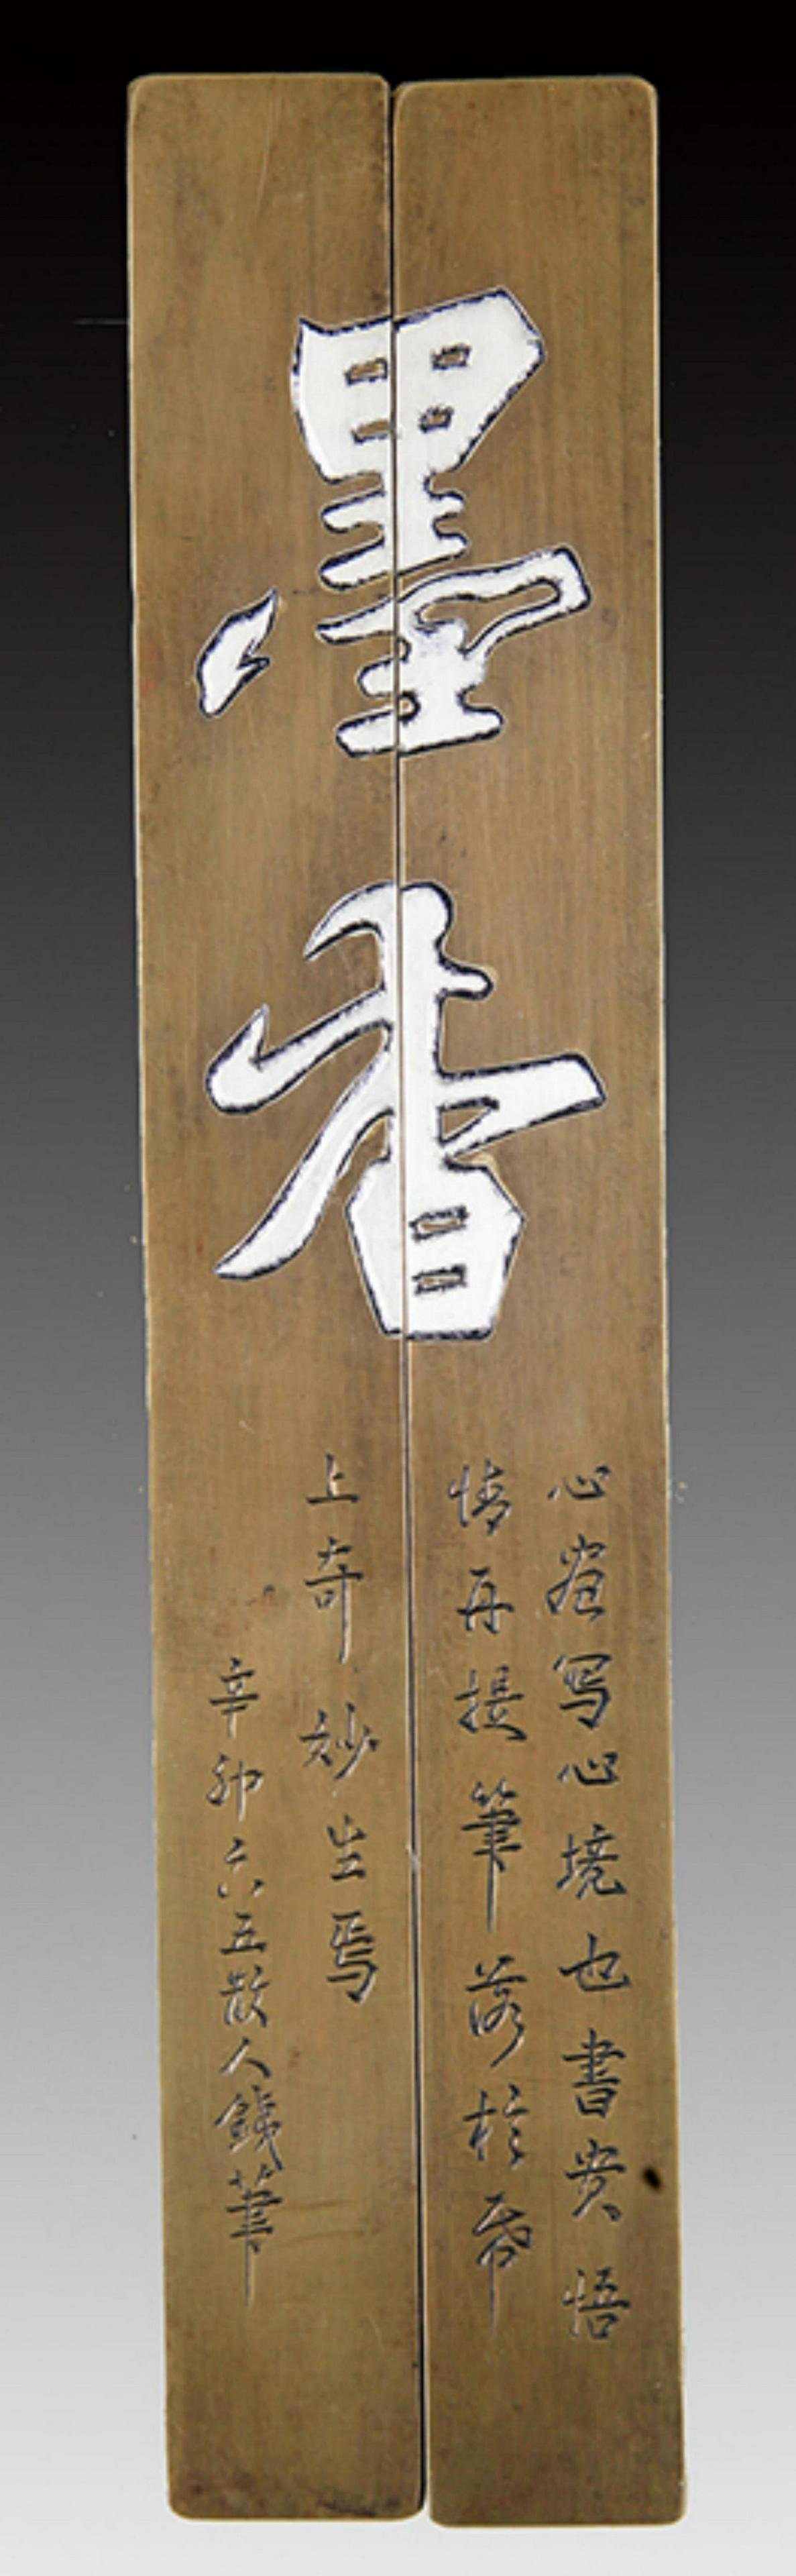 PAIR OF CHINESE CALLIGRAPHY CARVING BRONZE PAPER WEIGHT